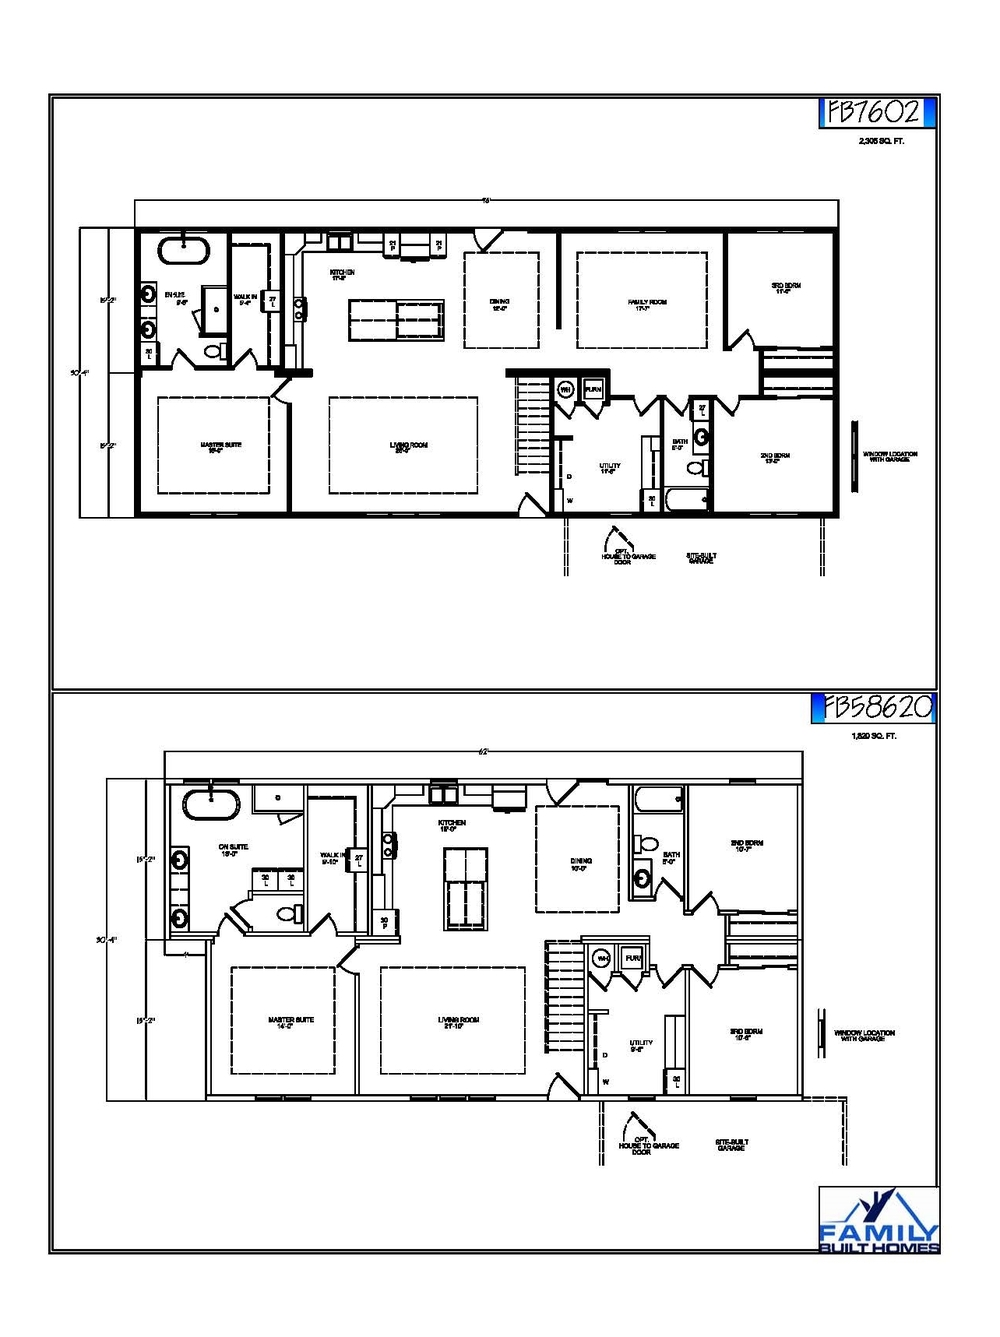 Floor plan collection sheets Model (1).pdf5862.jpg